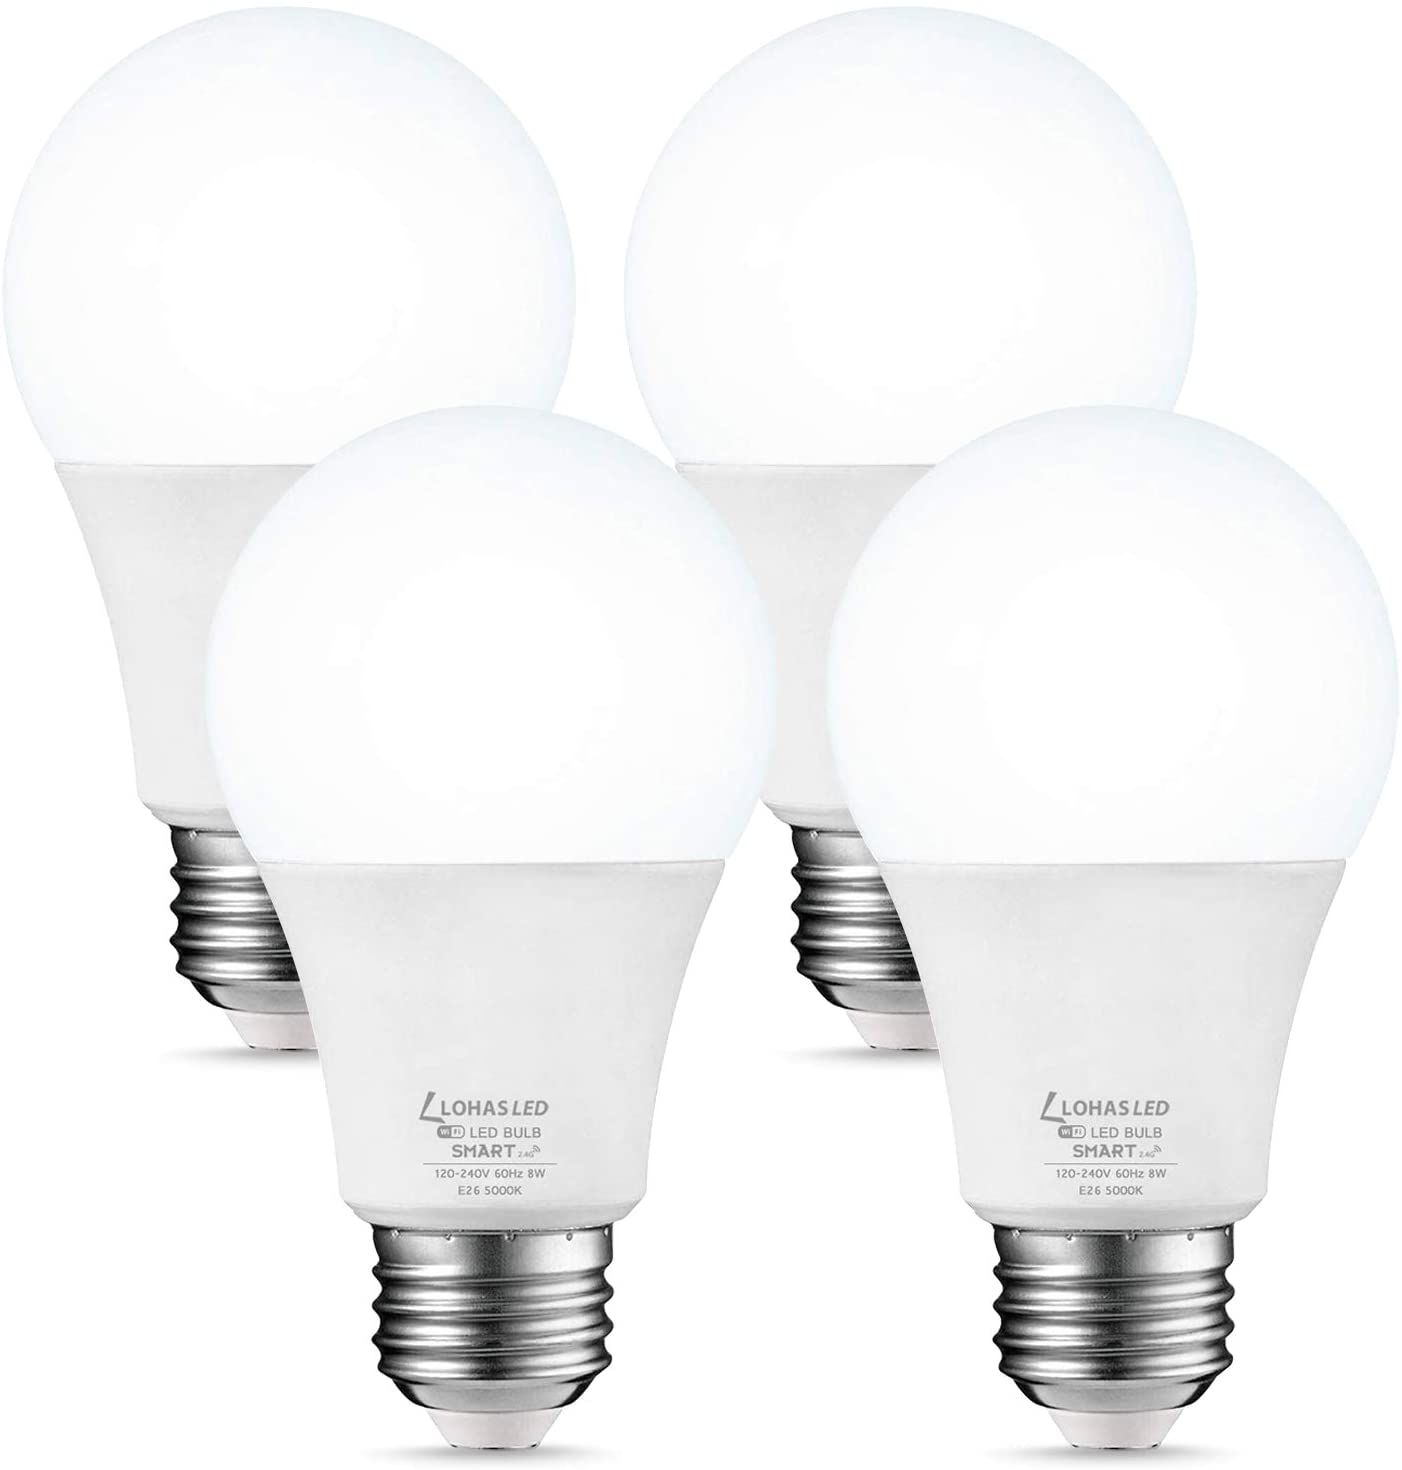 lohas dimmable smart light bulb isolated on white background